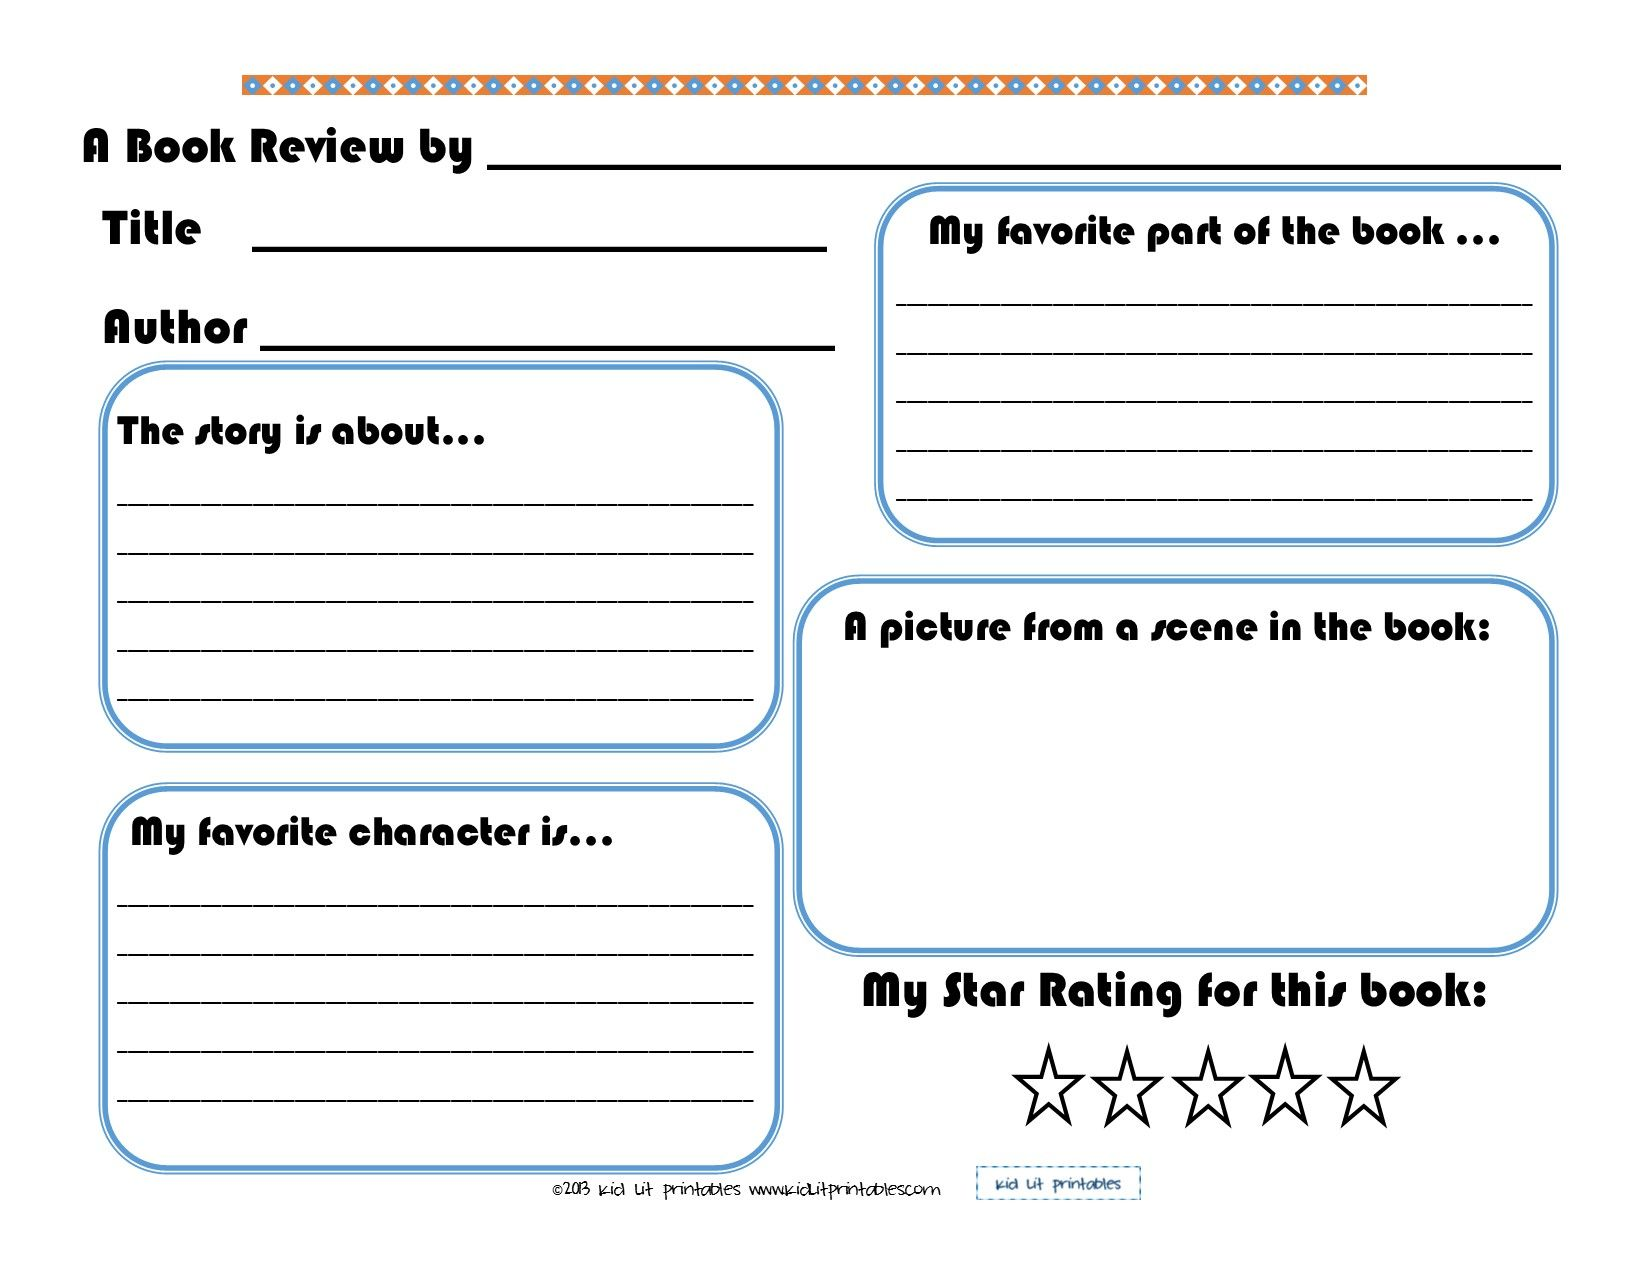 3 levels of free printable book reports from Kid Lit Printables